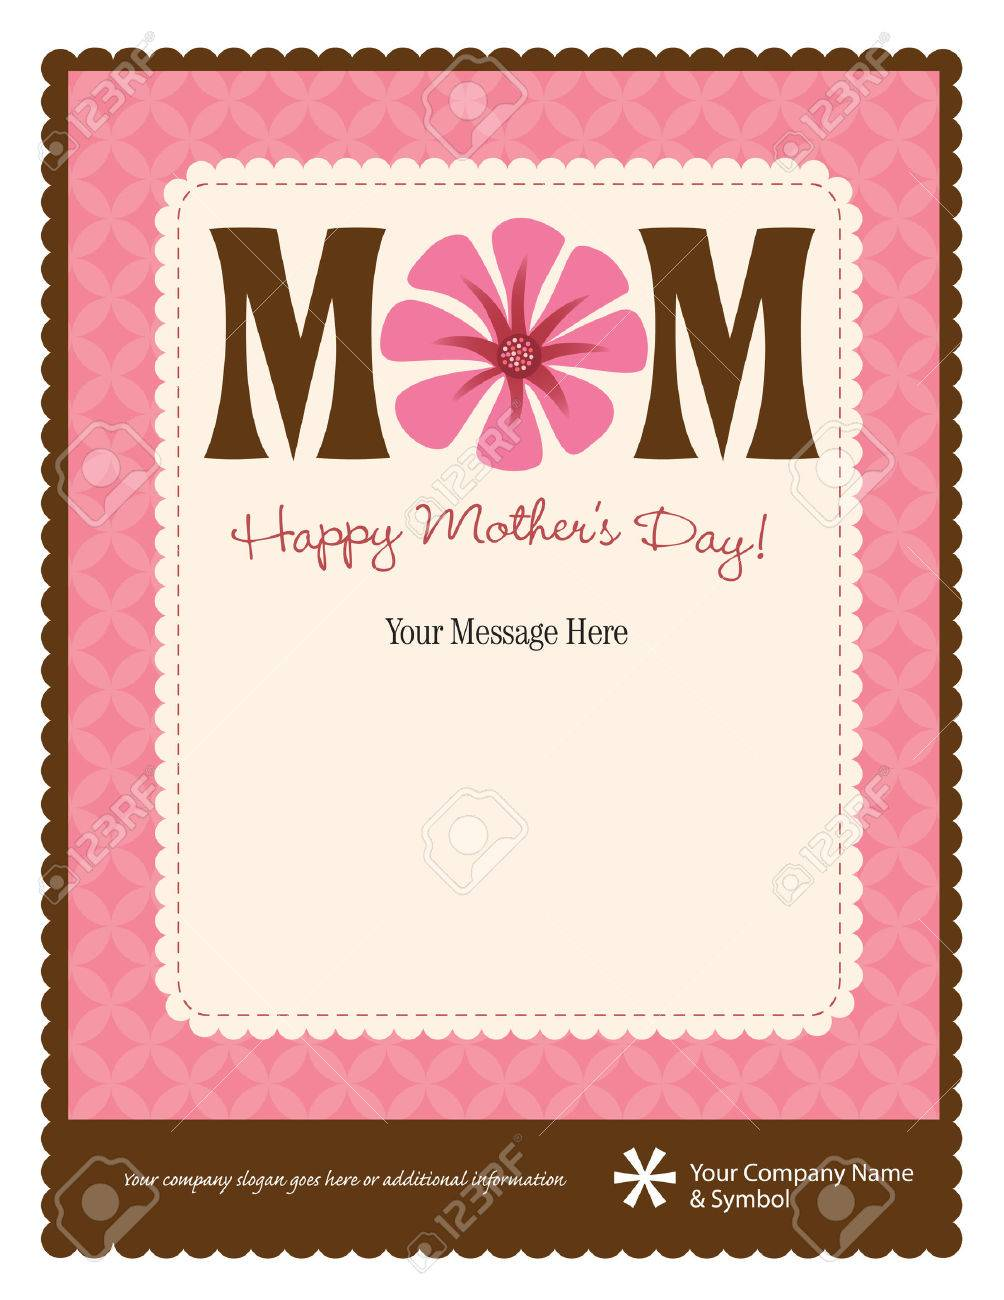 8 5x11 poster design - 8 5x11 Happy Mother S Day Flyer Poster Template Stock Vector 4775897